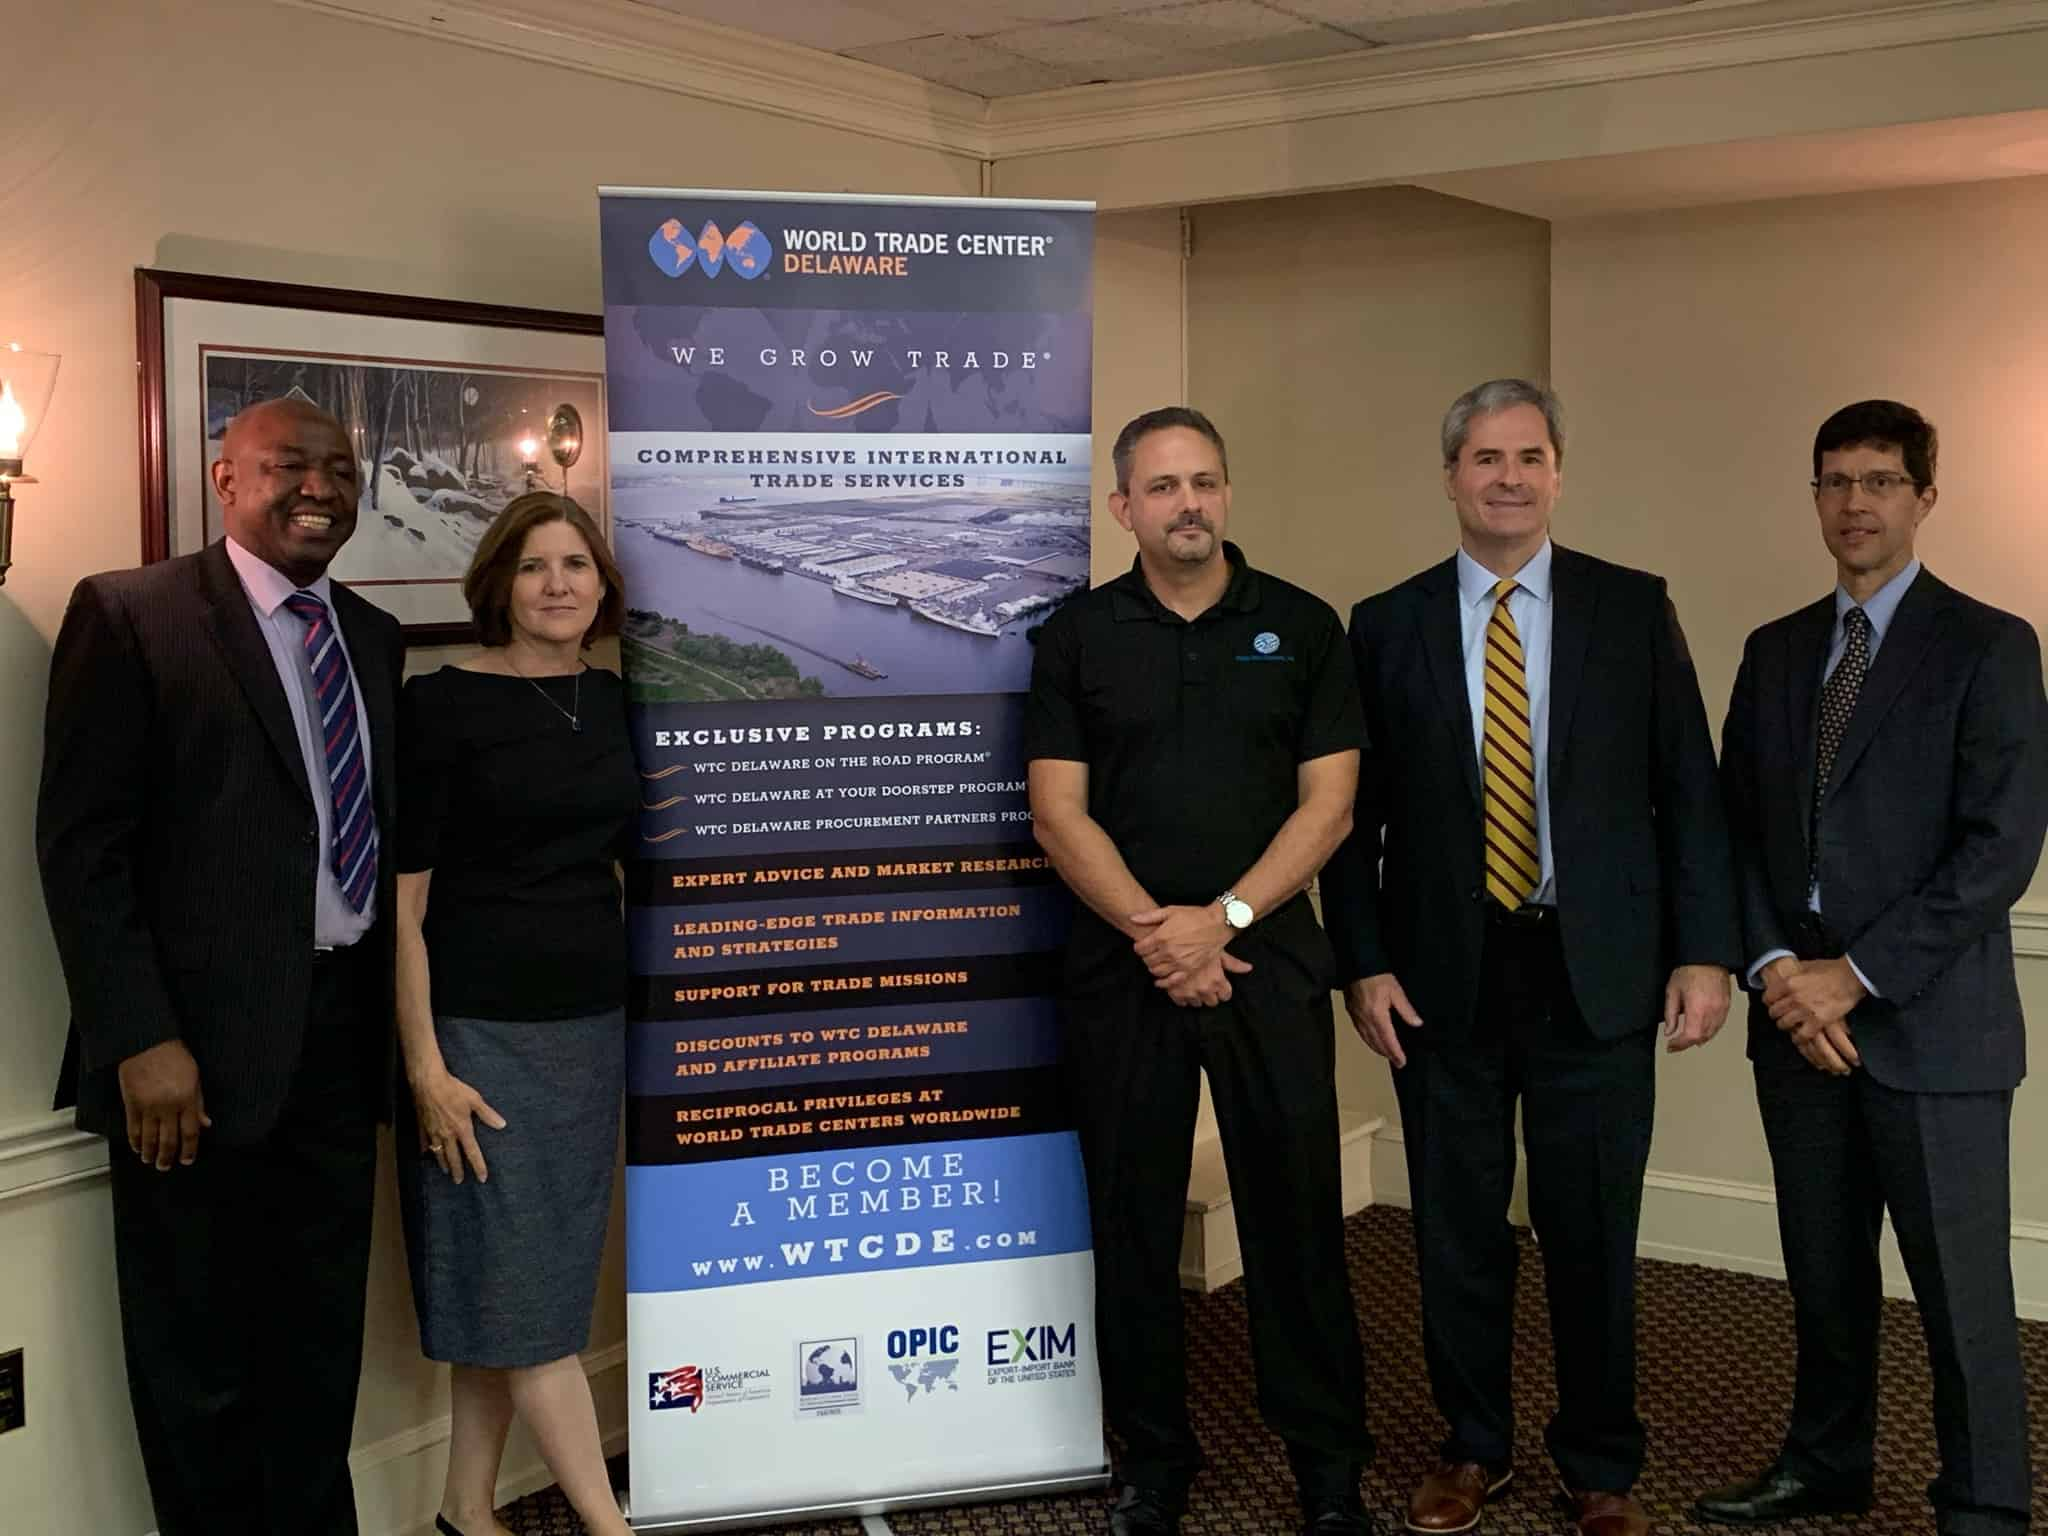 World Trade Center Delaware GDPR Event Expert Speakers Group Photo